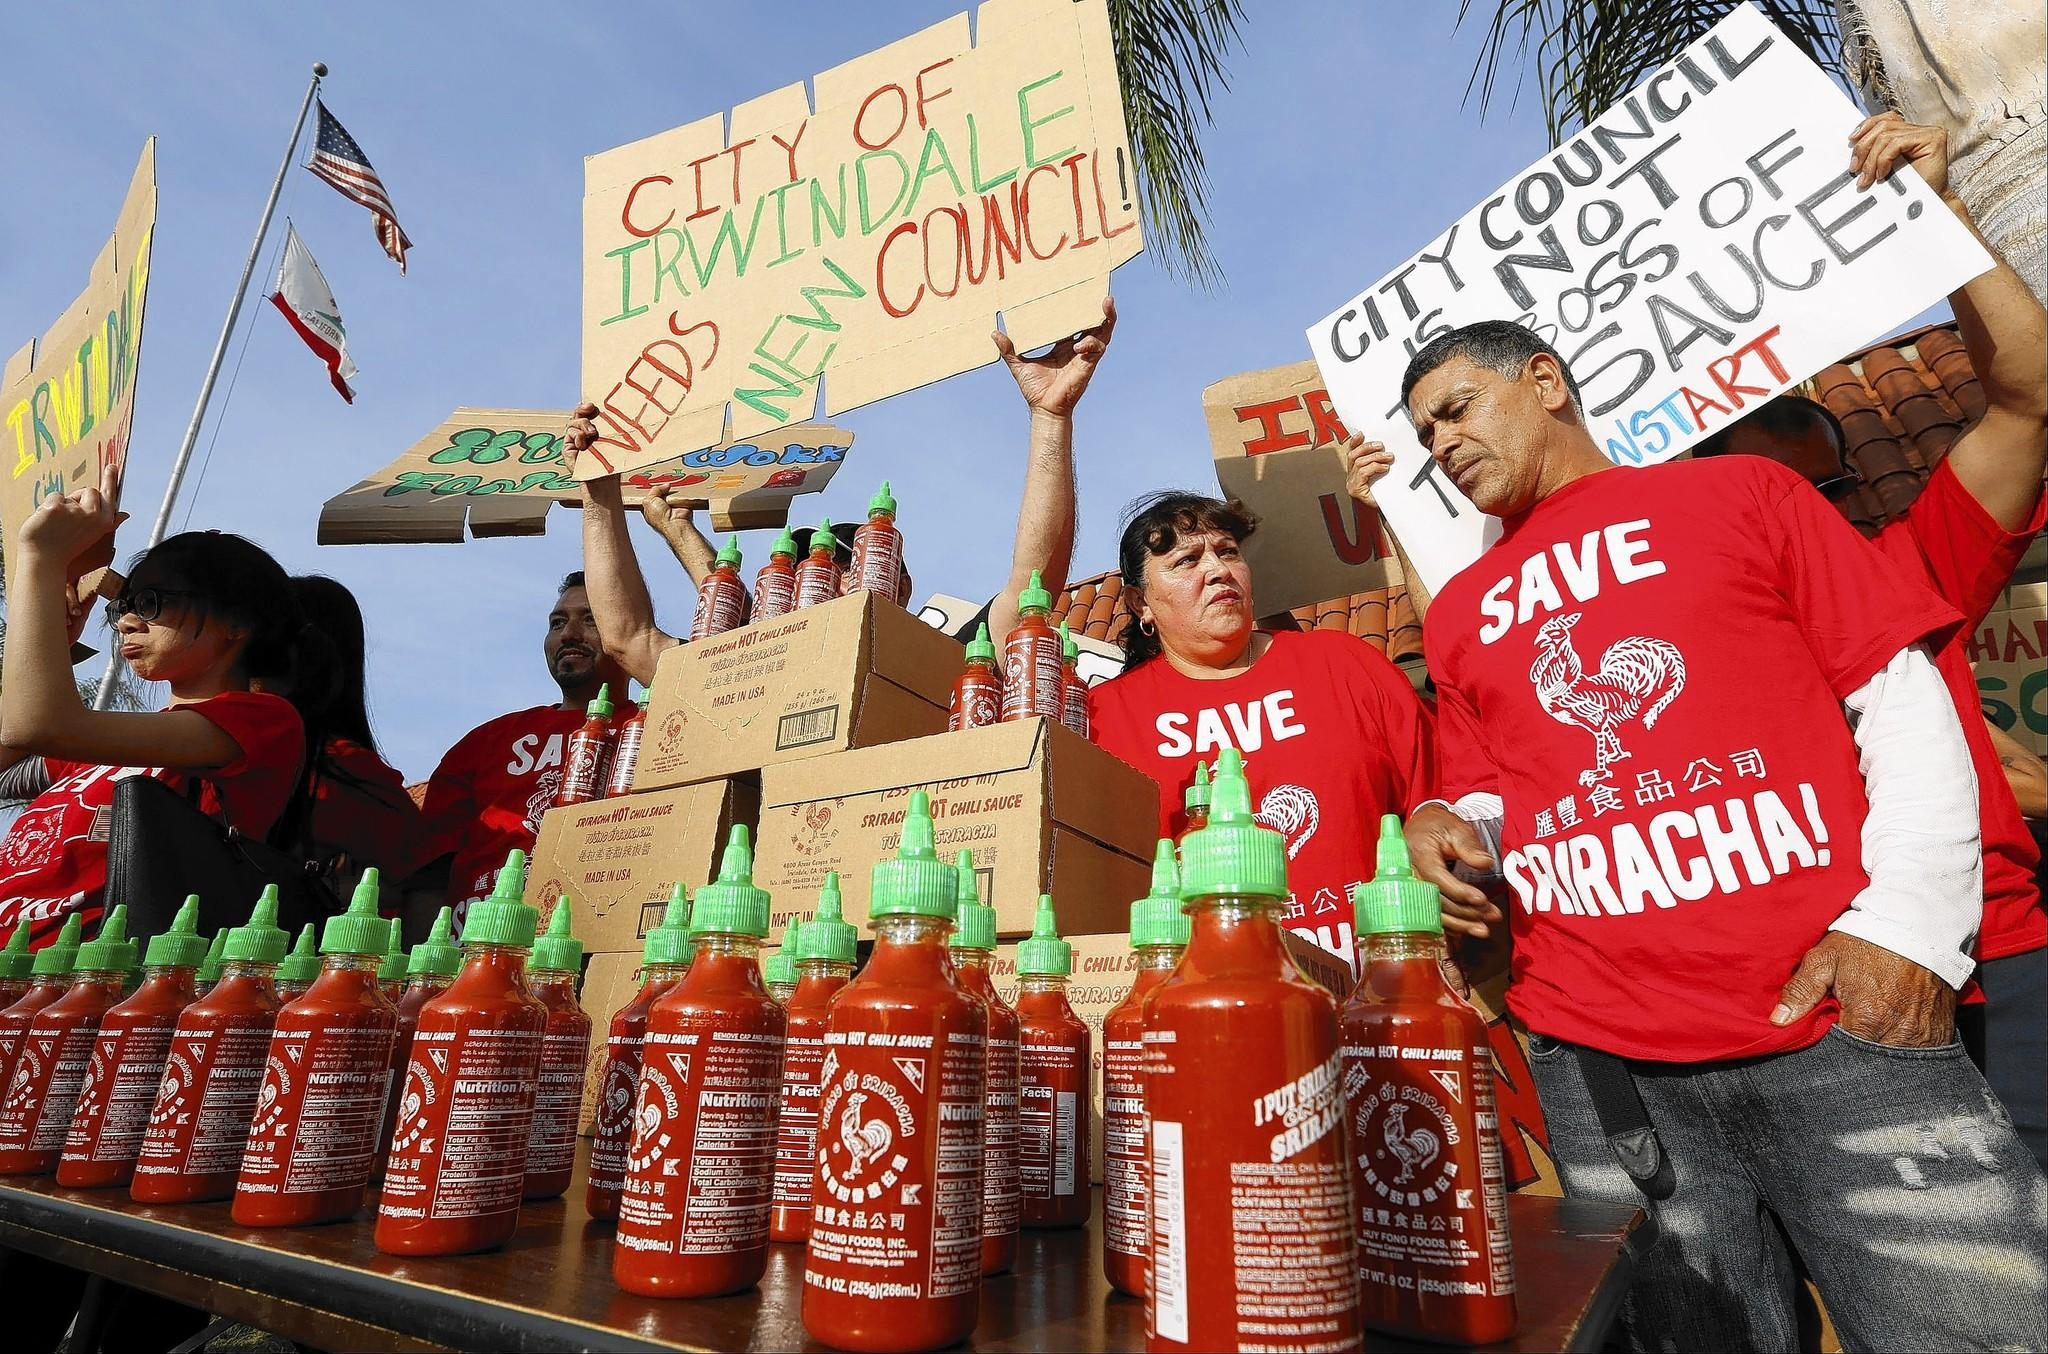 Sriracha hot sauce workers protest before the start of the Irwindale City council meeting. The council previously drafted a resolution declaring Sriracha a public nuisance because of the burning smell coming from its plant.